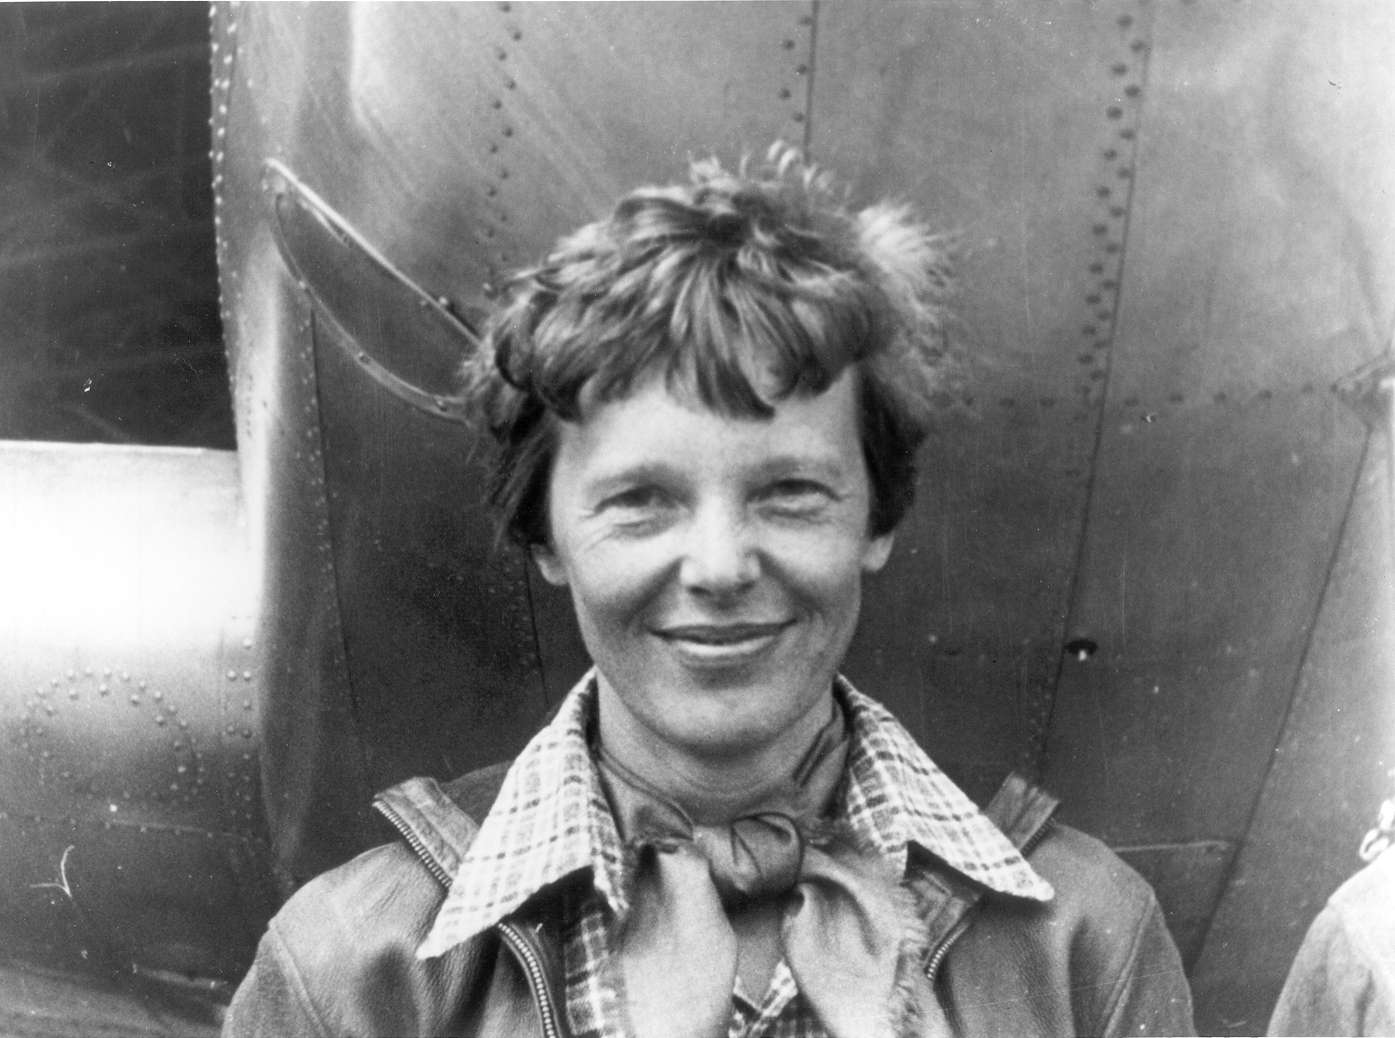 Amelia Earhart close up standing in front of a plane.